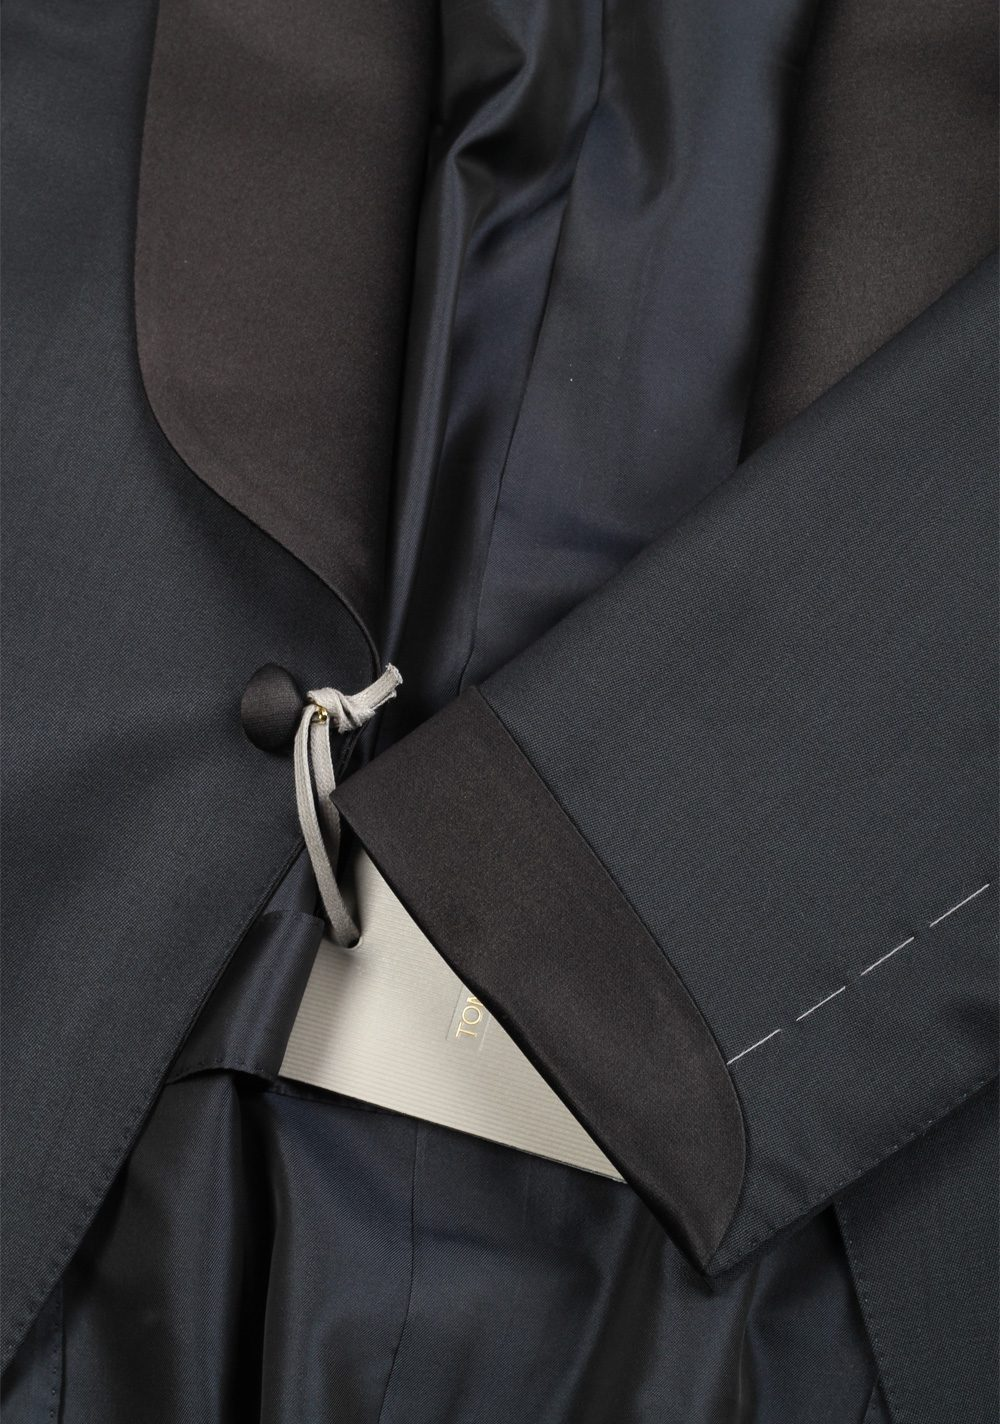 TOM FORD O'Connor Blue Shawl Collar Tuxedo Suit Size 50 / 40R U.S.  Fit Y | Costume Limité